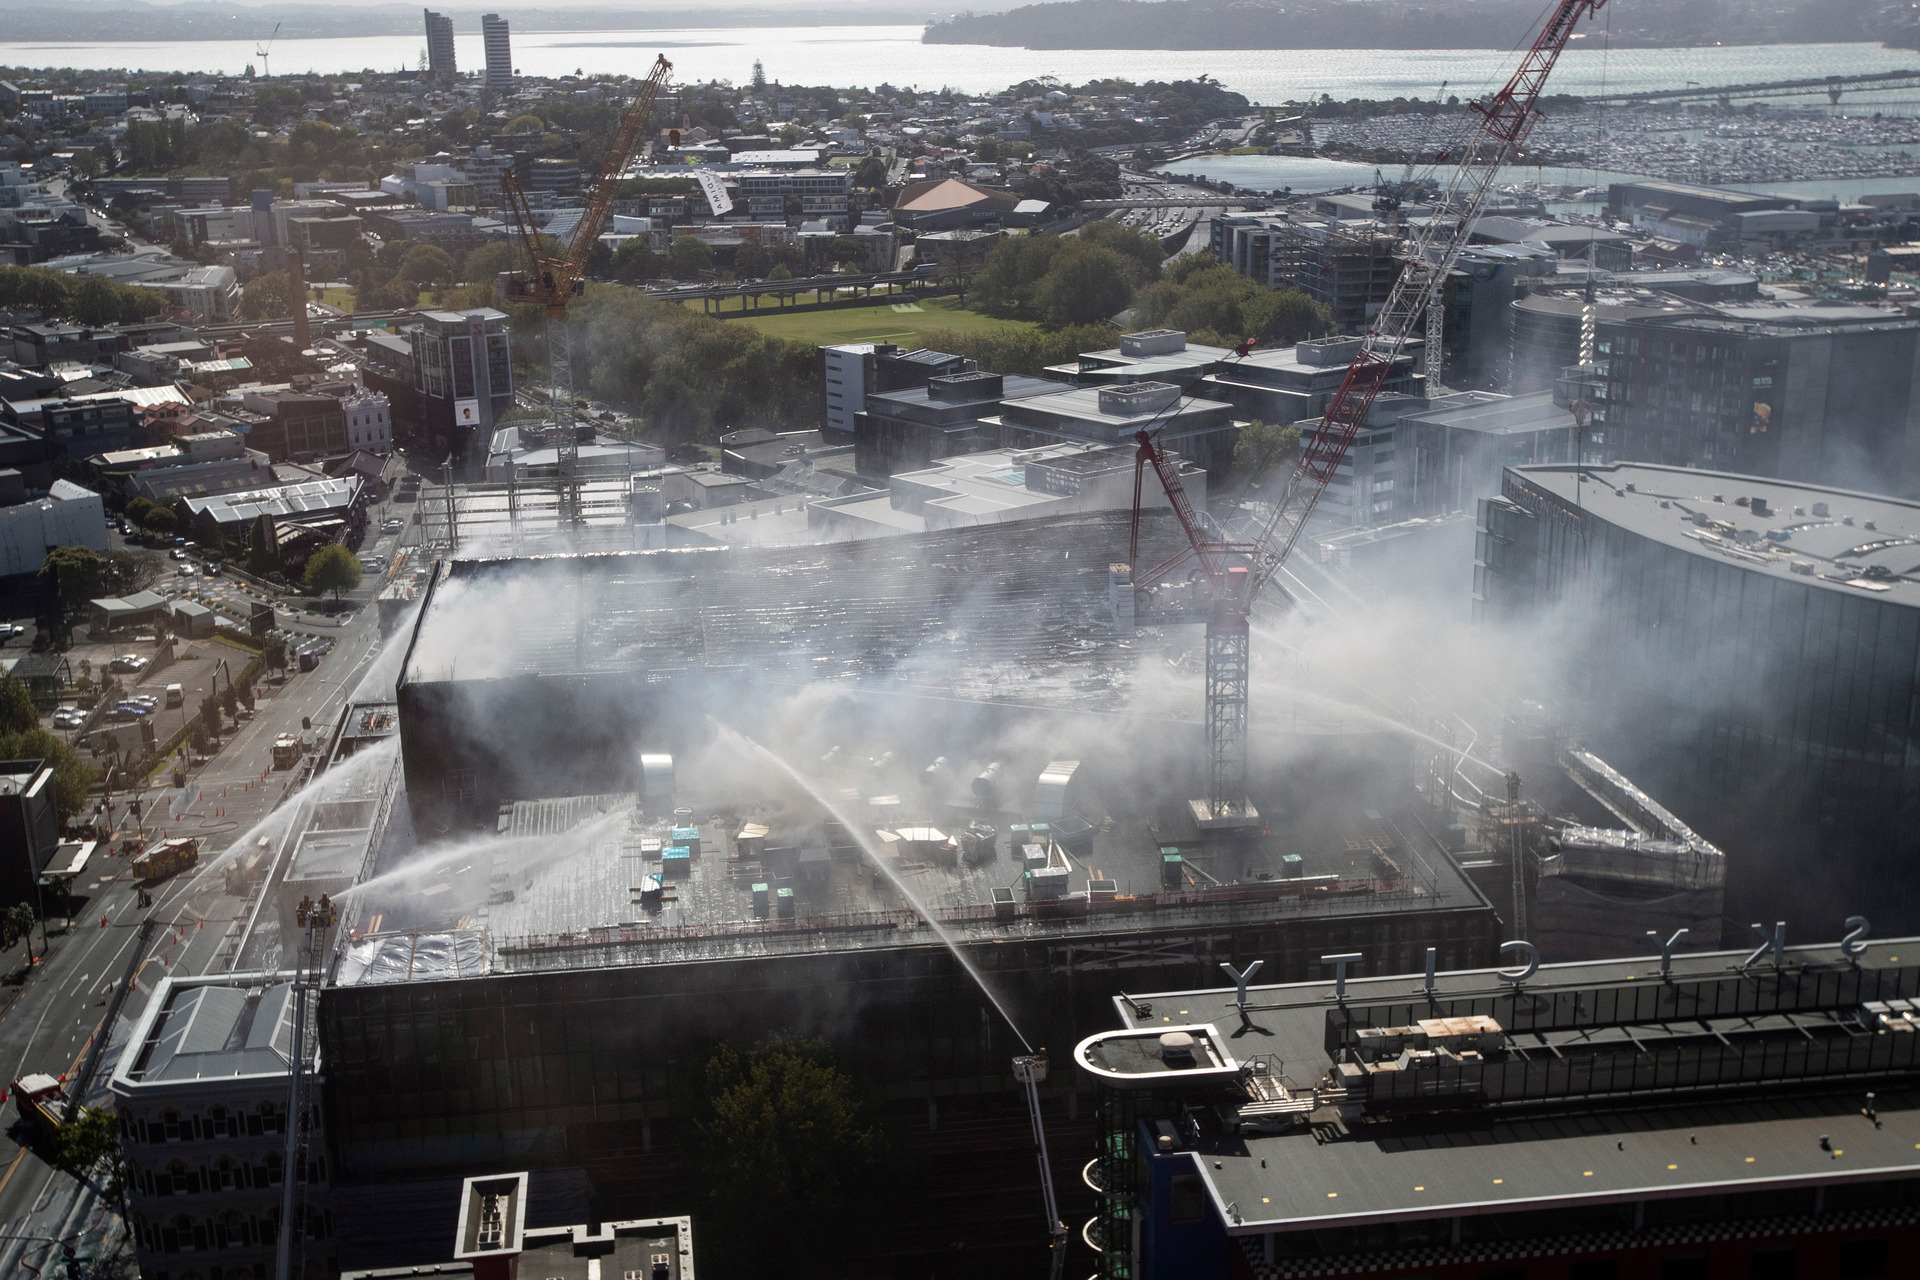 Fire under control but days of disruption ahead